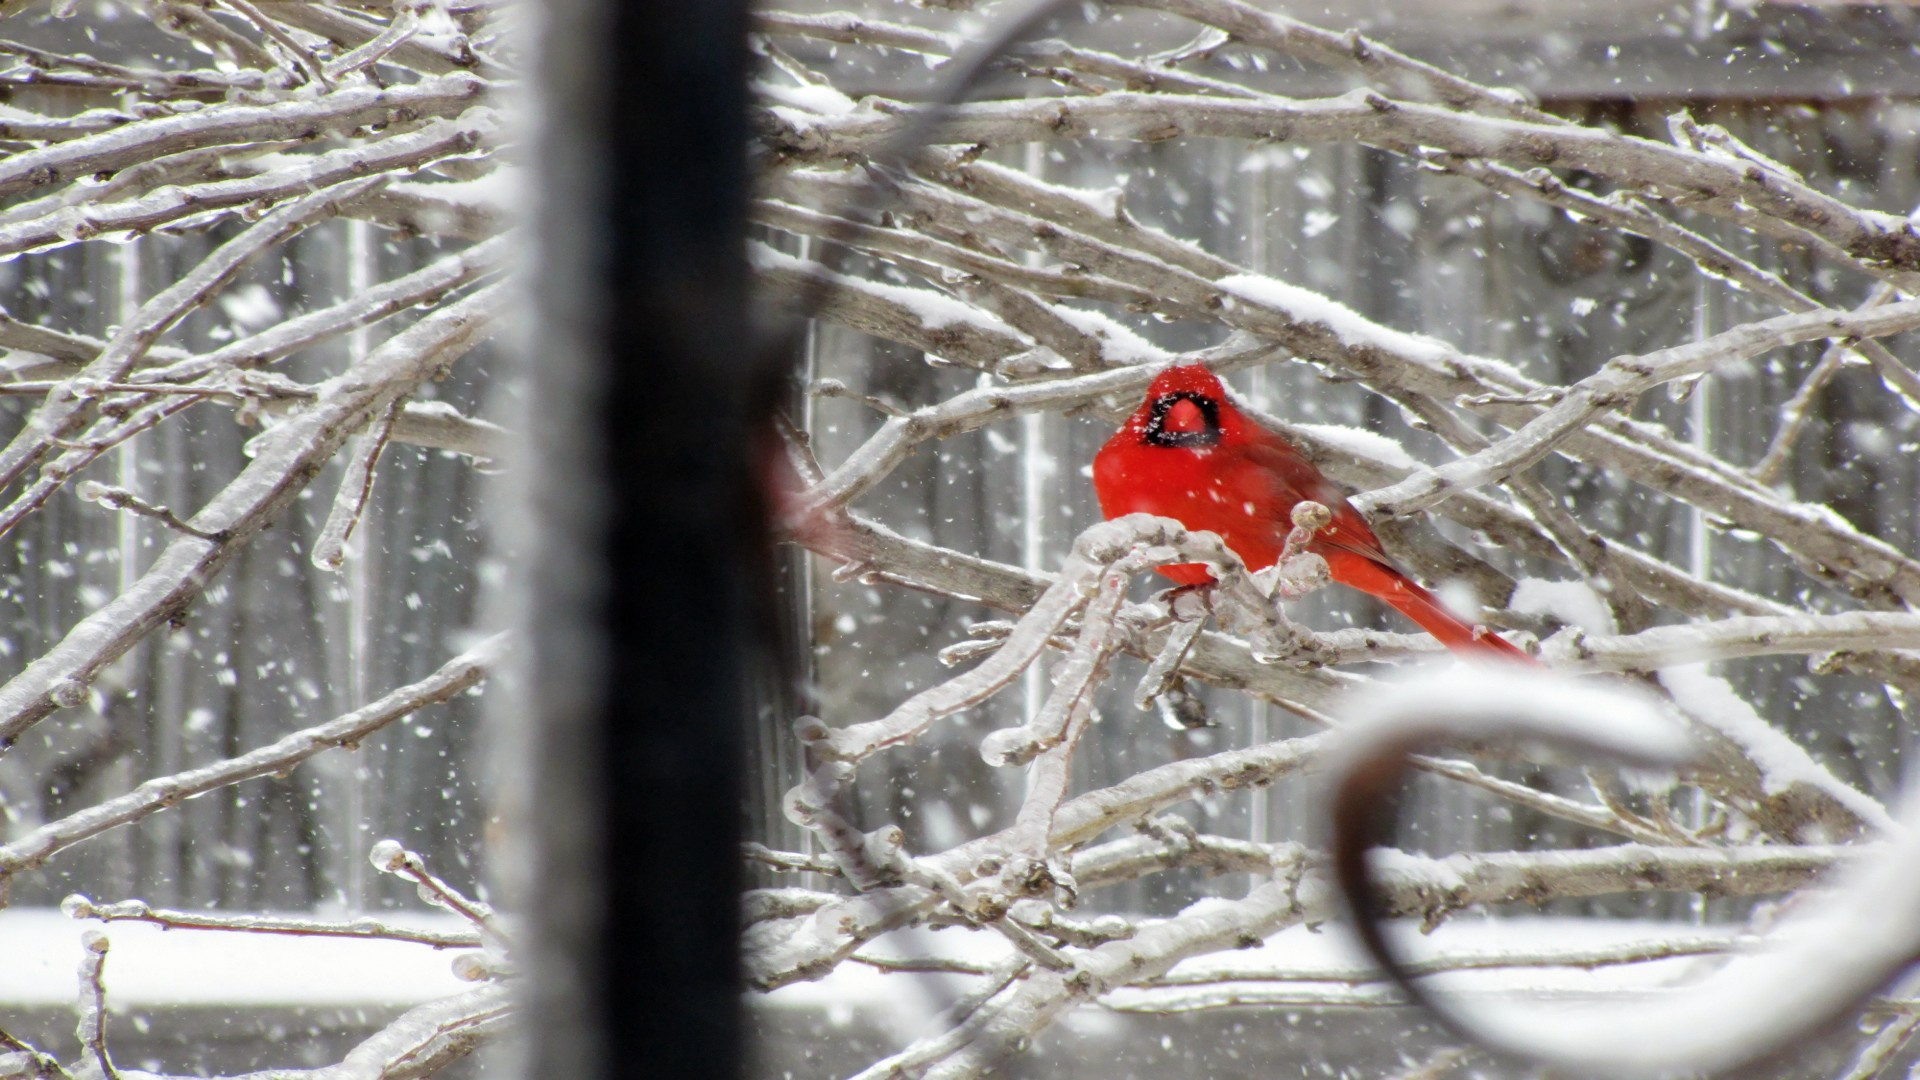 Cardinal Bird in Snow images 1920x1080